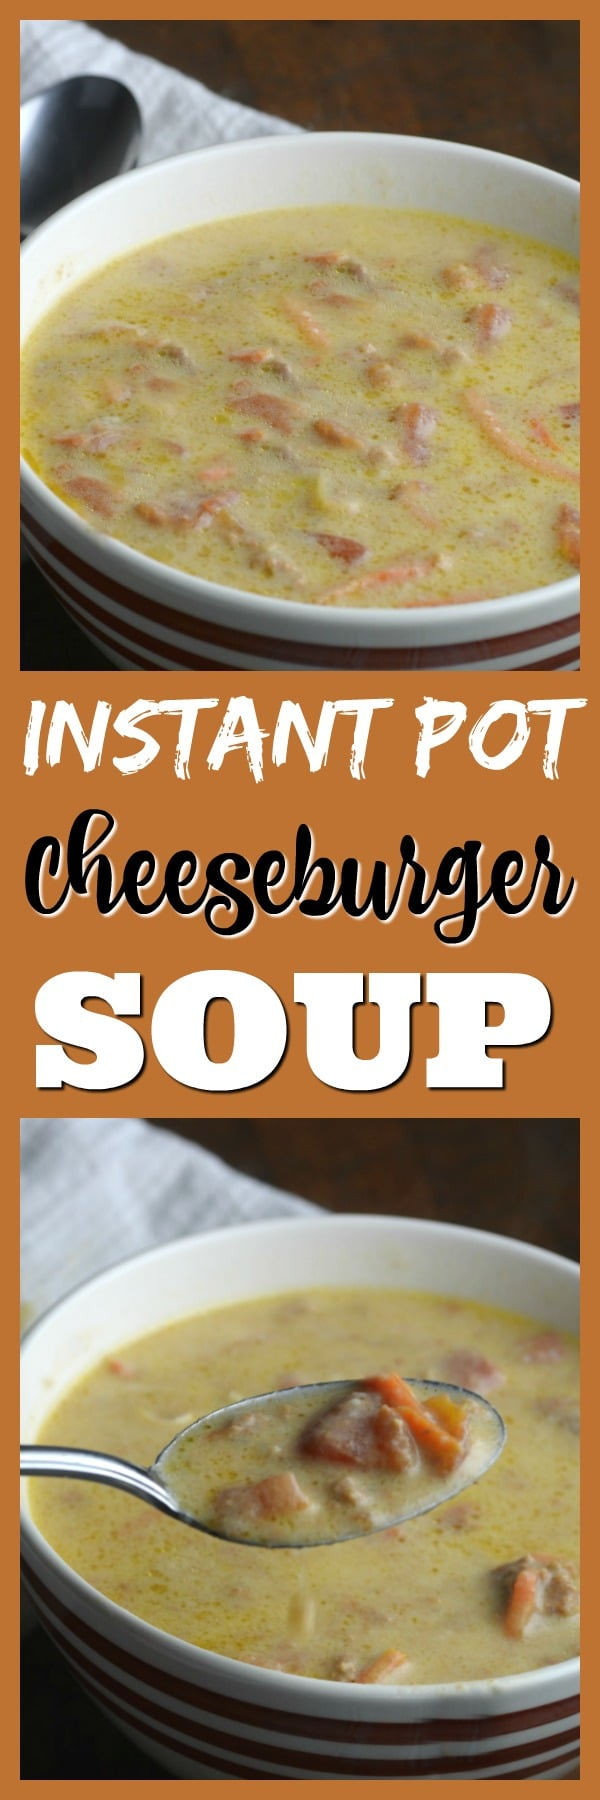 instant-pot-cheeseburger-soup